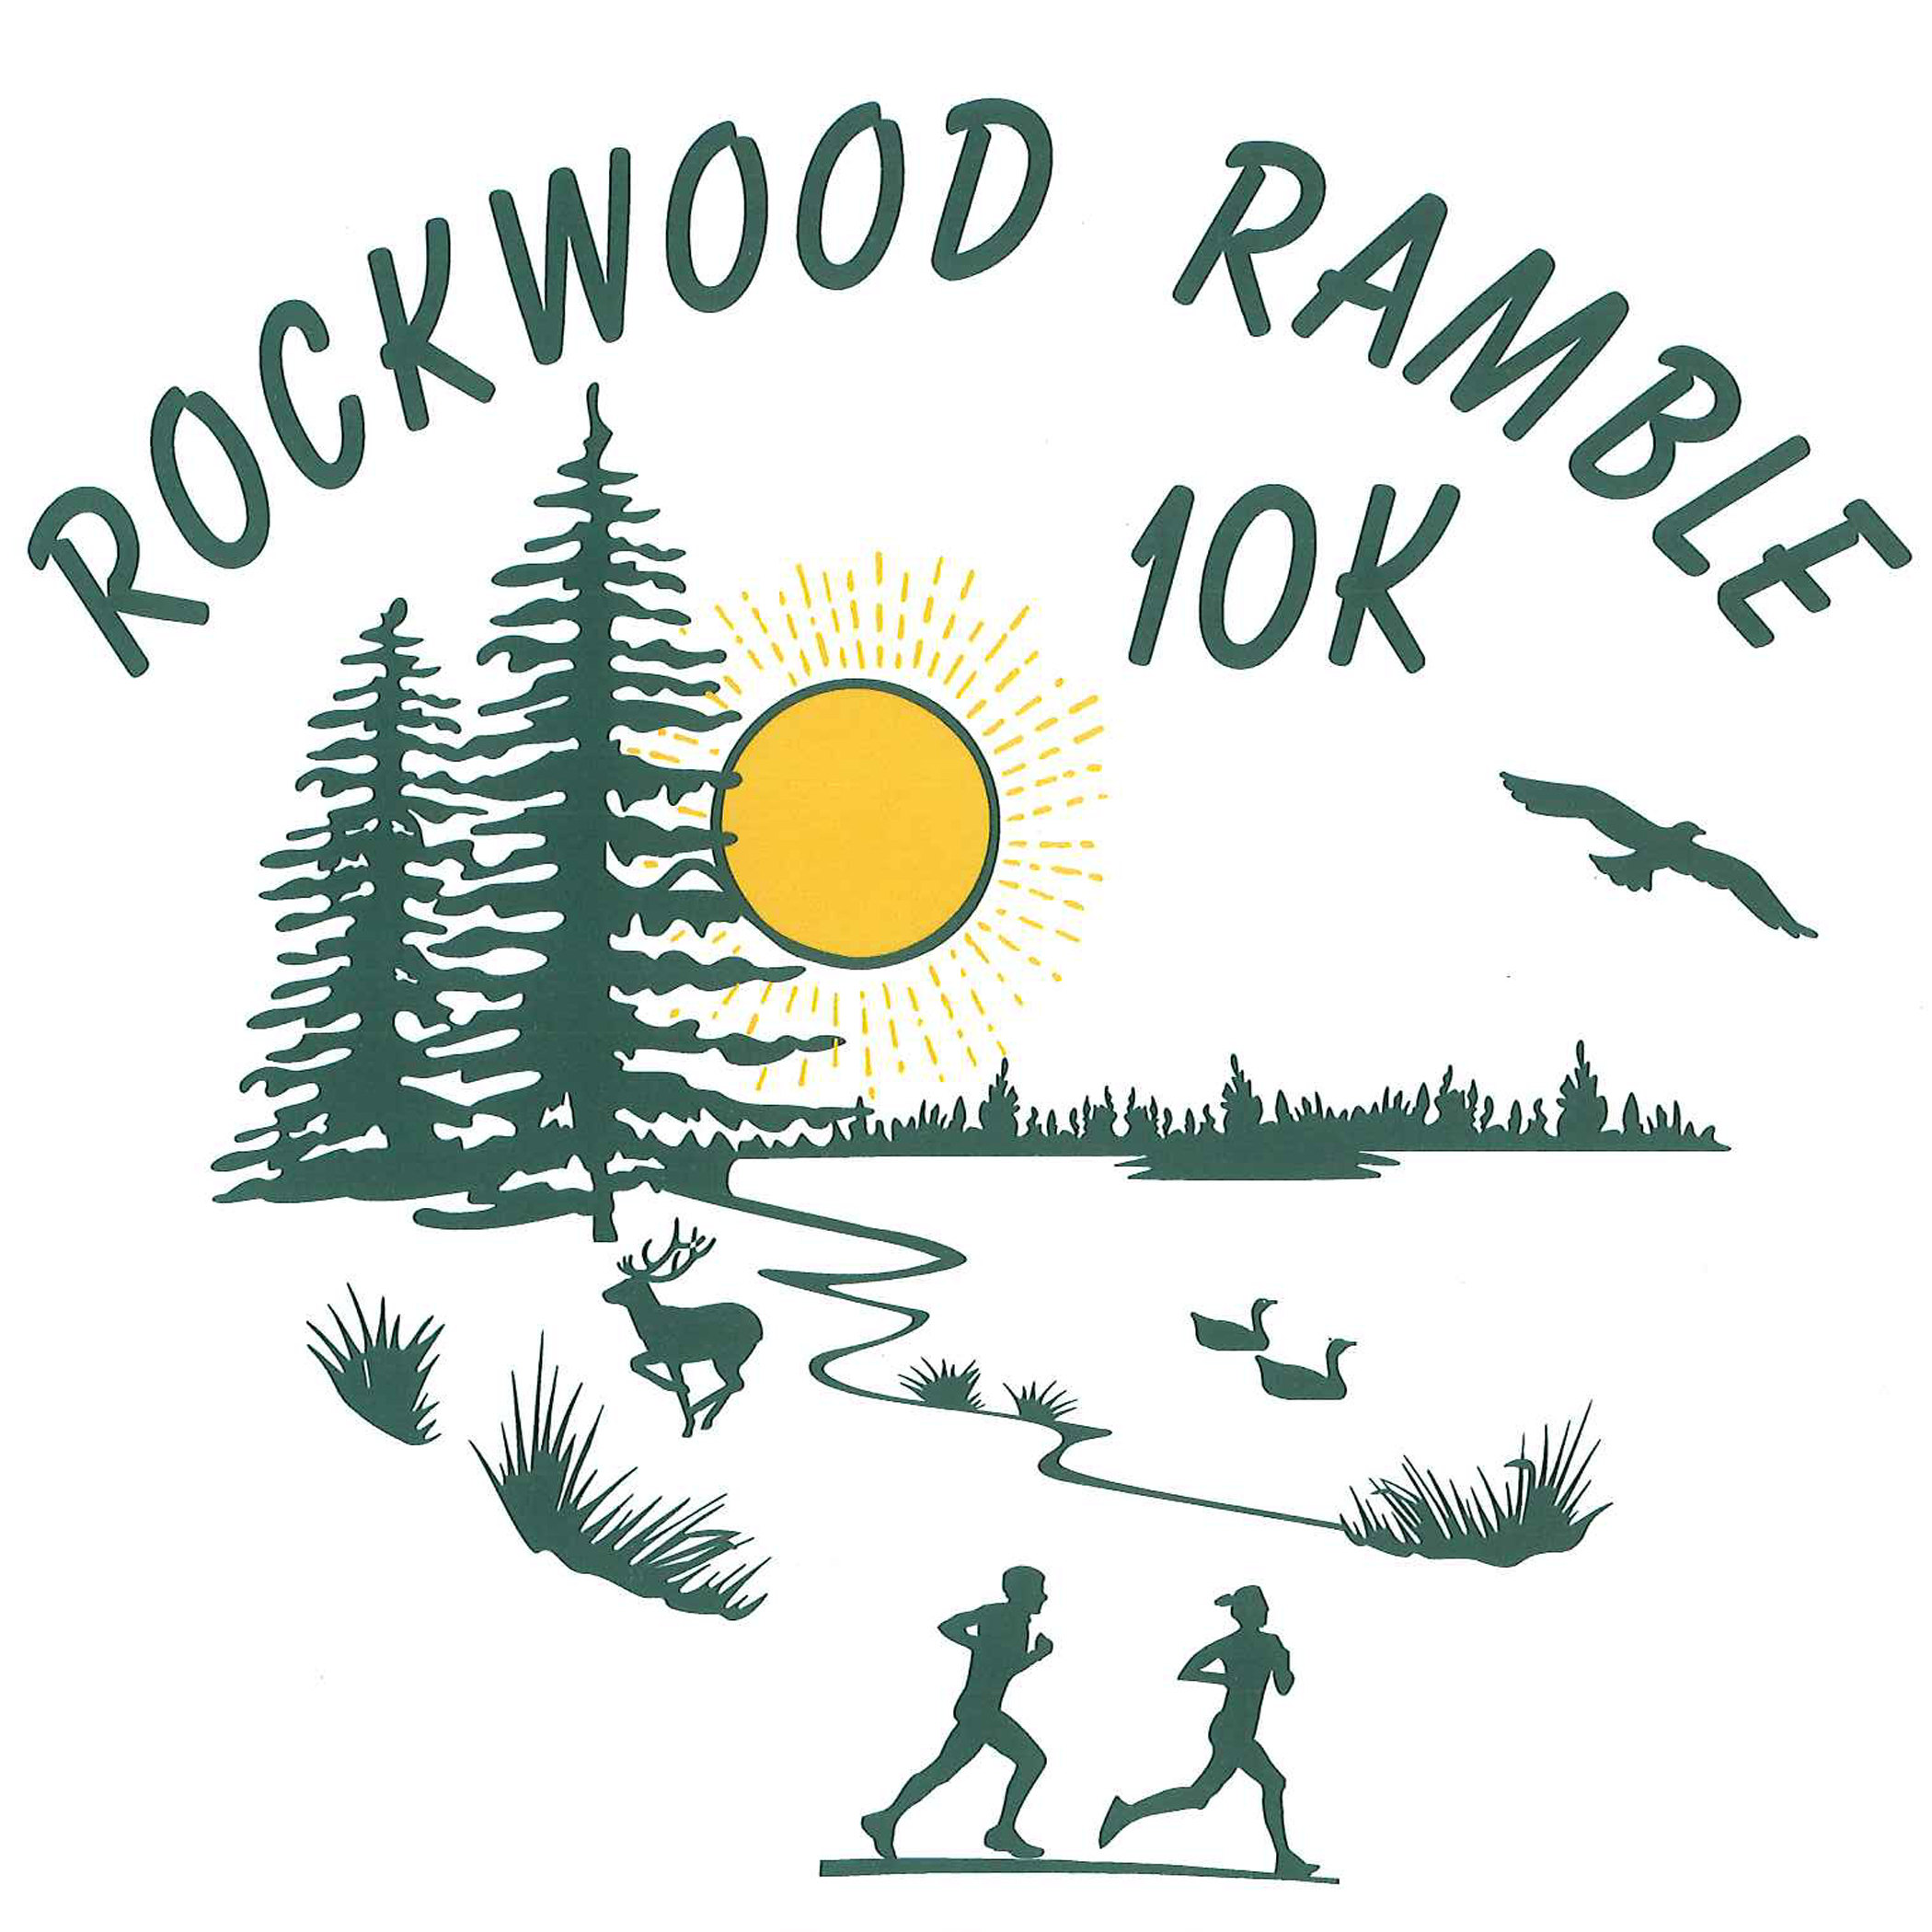 Rockwood Ramble 10K - June 1, 2019